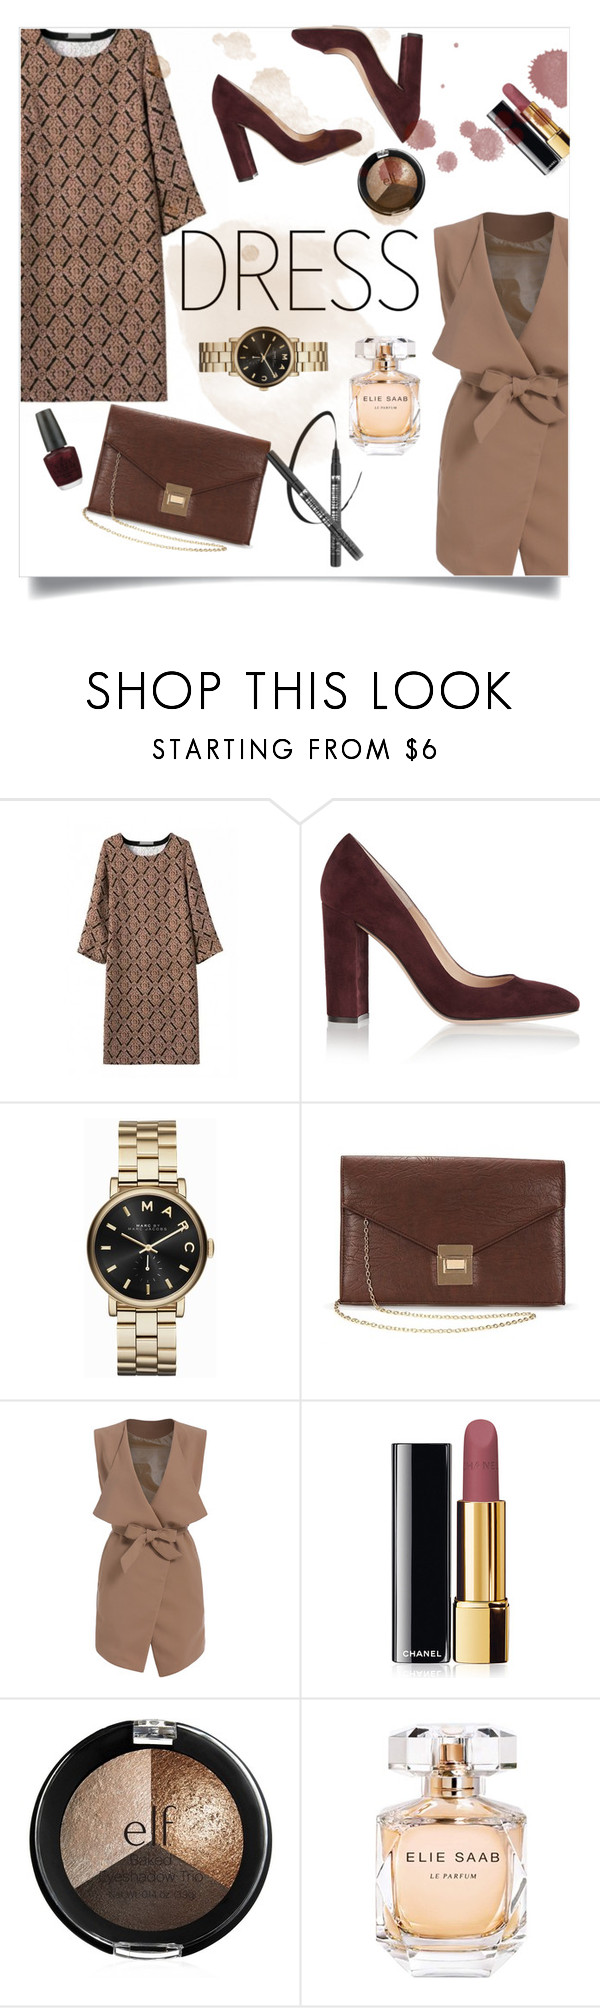 """Keep warm with warm colors"" by marinakoval ❤ liked on Polyvore featuring Gianvito Rossi, Chanel, Elie Saab and OPI"